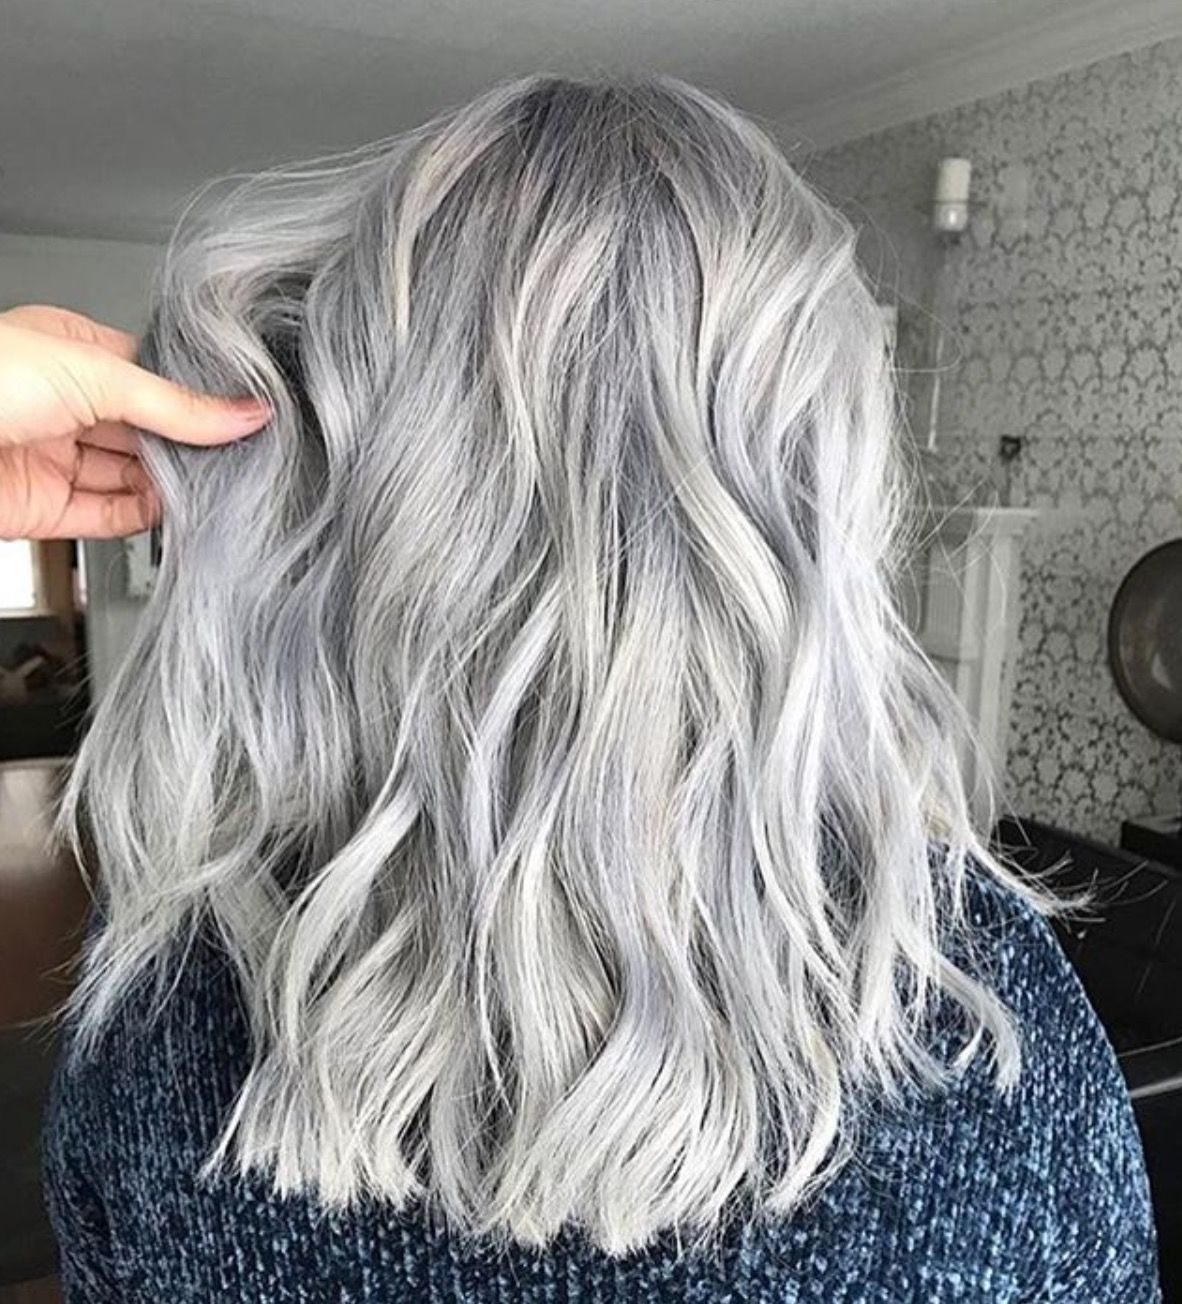 Pinterest positividy hair pinterest hair coloring for Color gray or grey